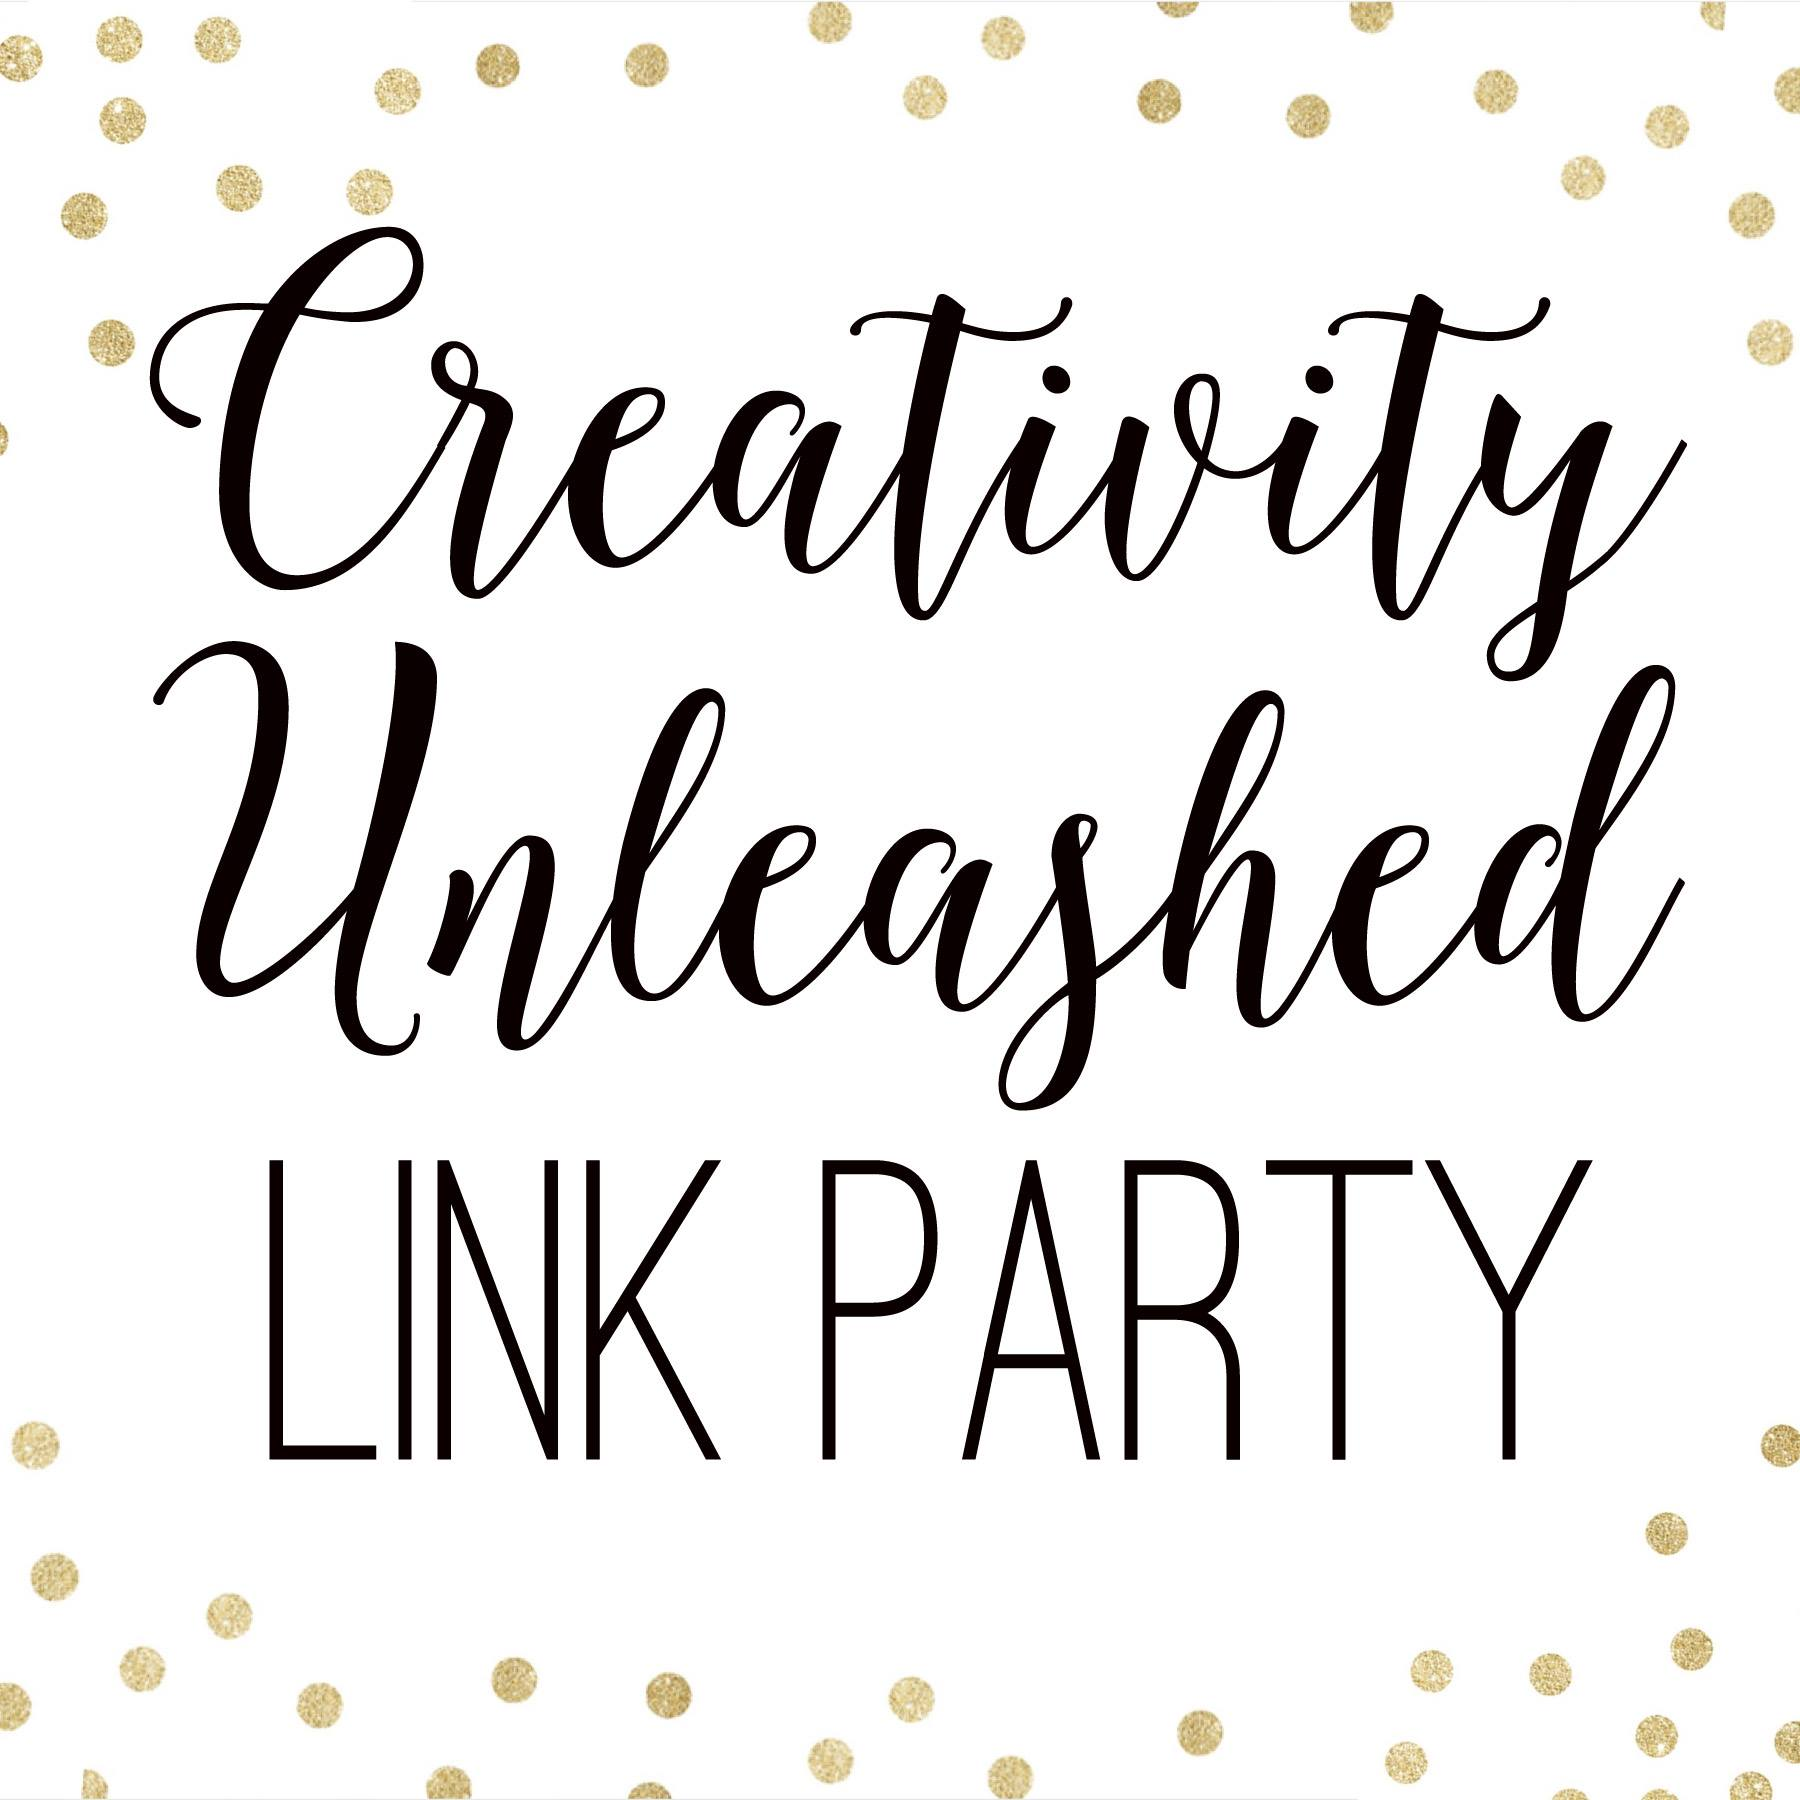 Creativity Unleashed link party every Thursday at 7pm ET!